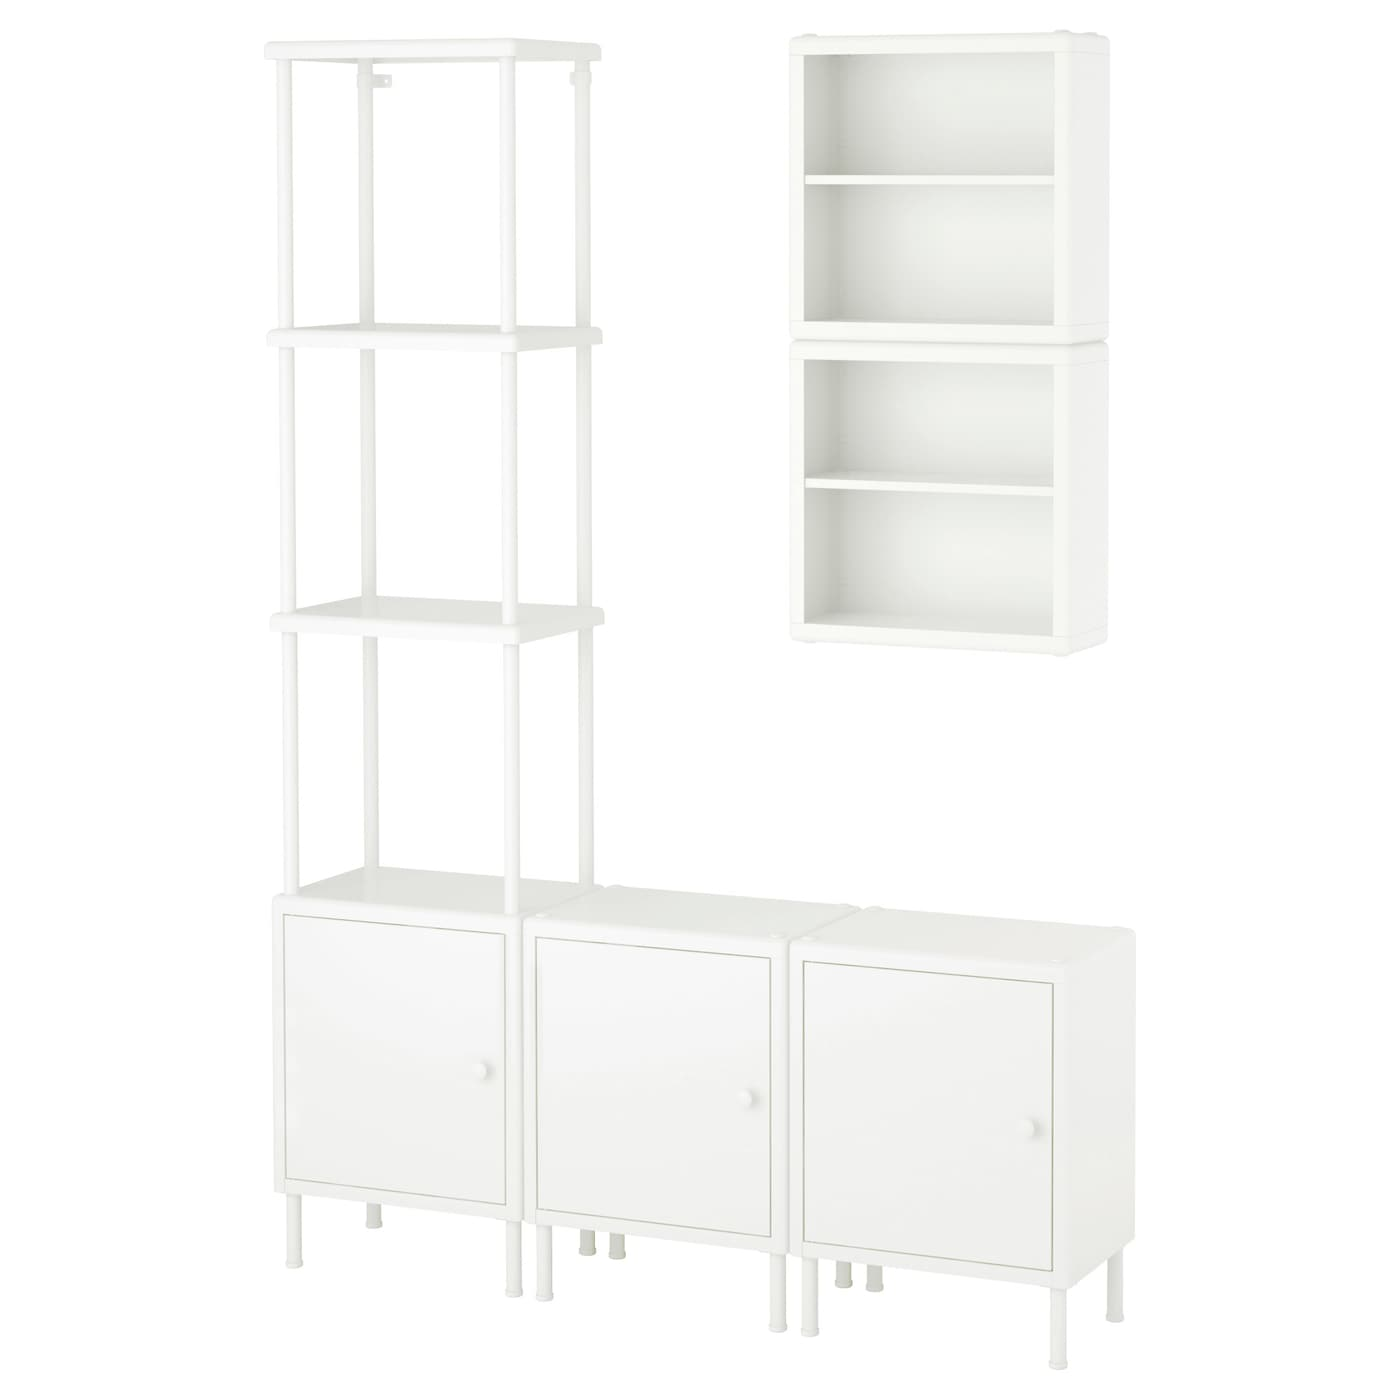 dynan shelving unit with 3 cabinets white 120 x 27 x 54 174 cm ikea rh ikea com step shelves for cupboards wire shelves for inside cupboards